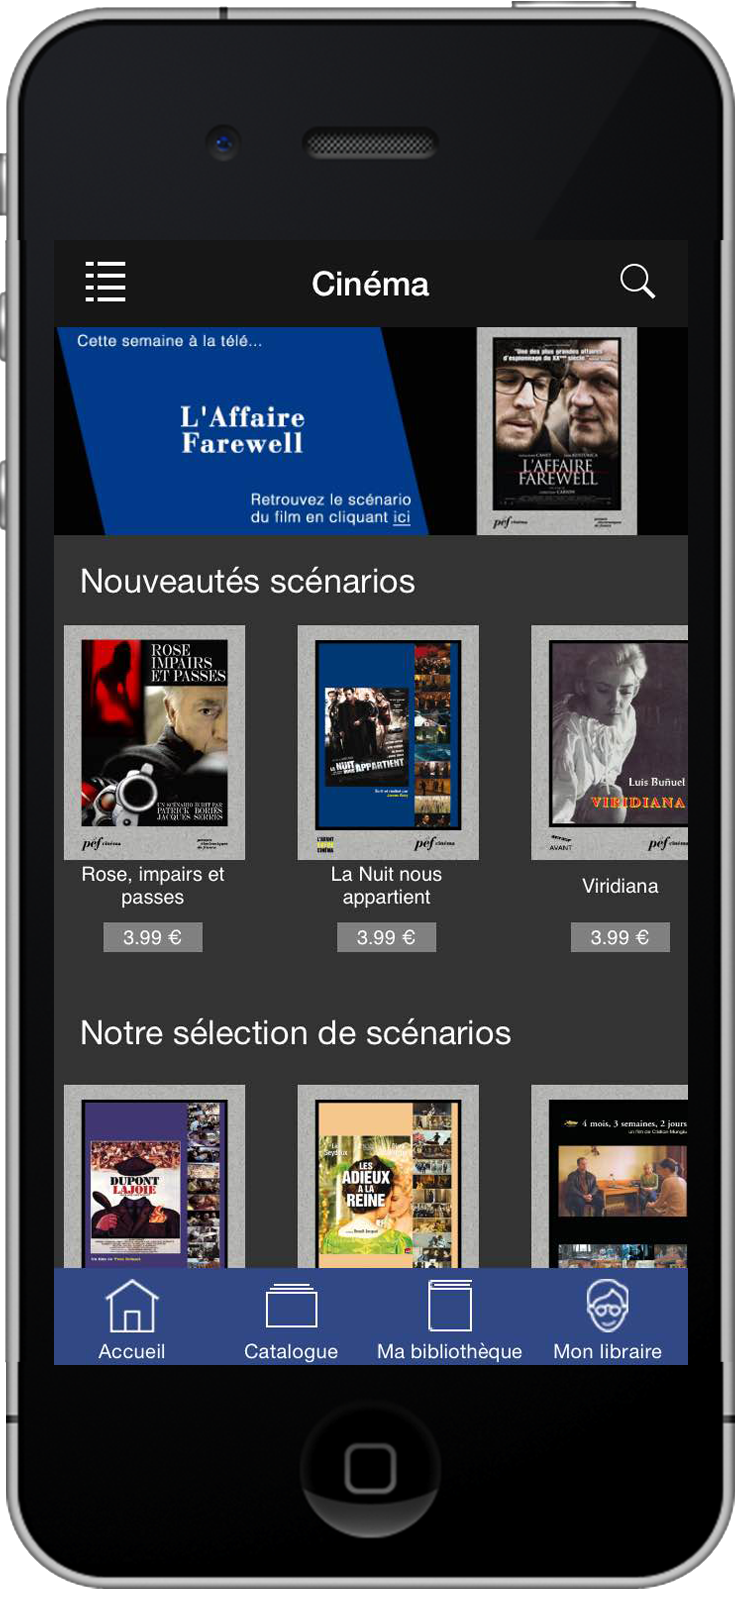 Capture d'écran de l'application PEF online sur iPhone